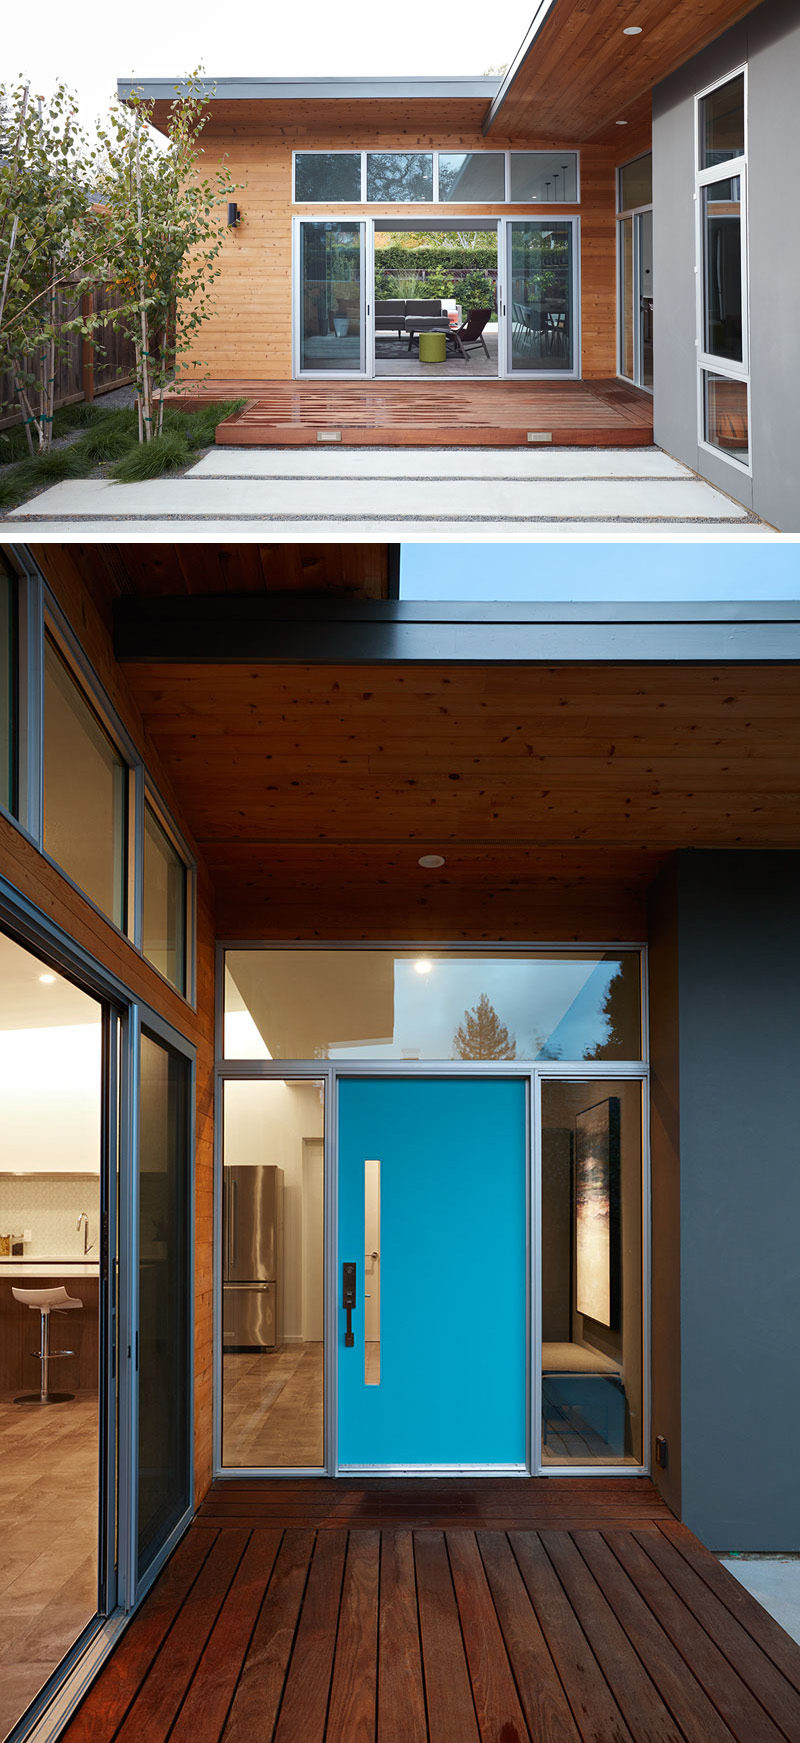 This renovated house has a small wood deck that guides you to the bright blue front door.